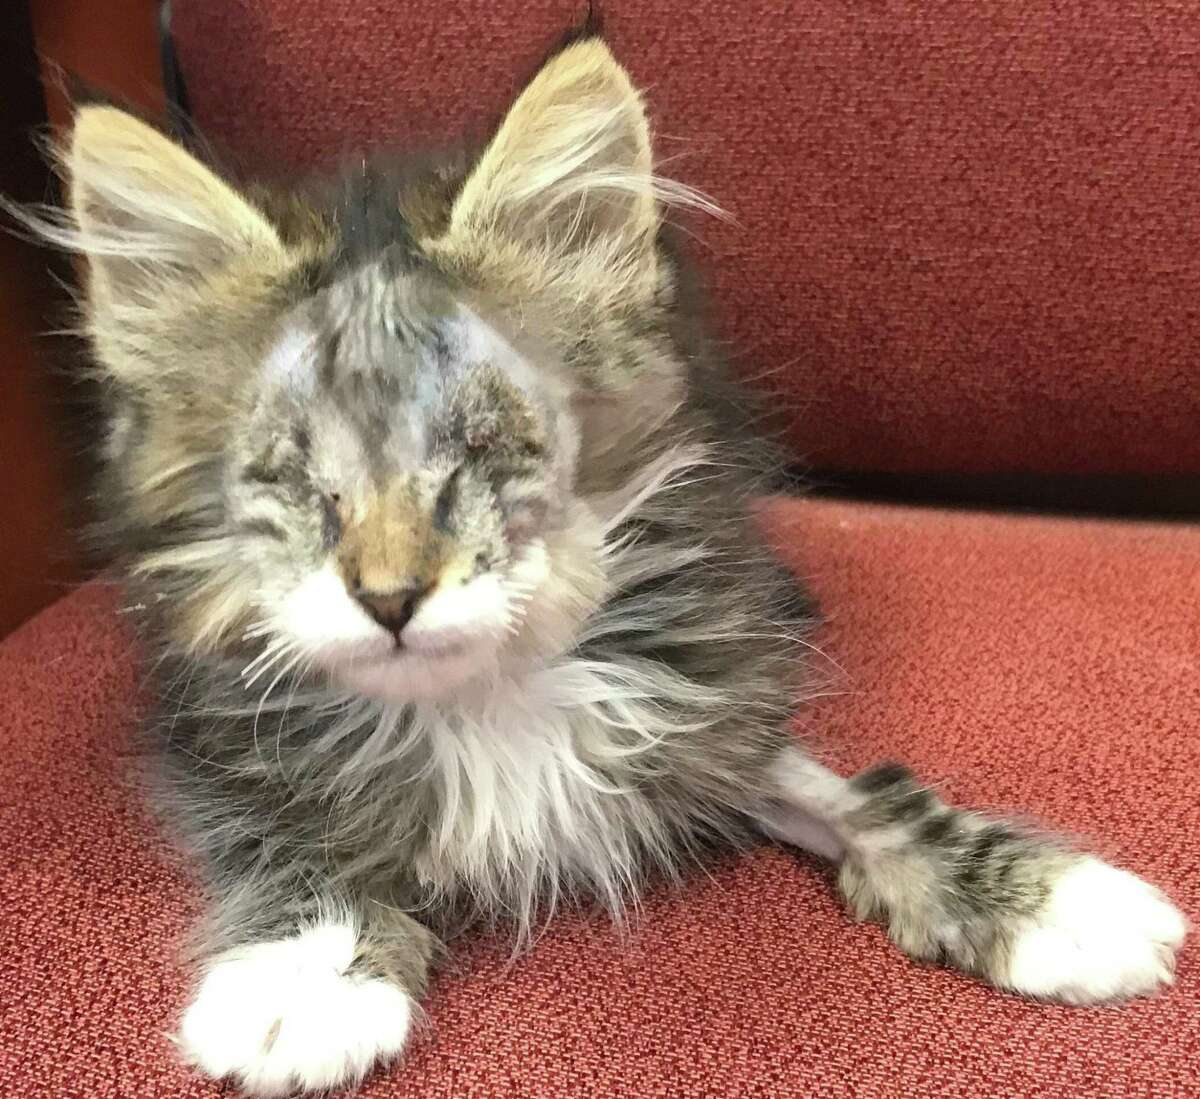 In late June, a West Side resident took a sick kitten he?'d found to ACS with an upper respiratory infection that required the surgical removal of both eyes. The shelter was hoping to find a adoptive home for the kitten, who they named Billy.